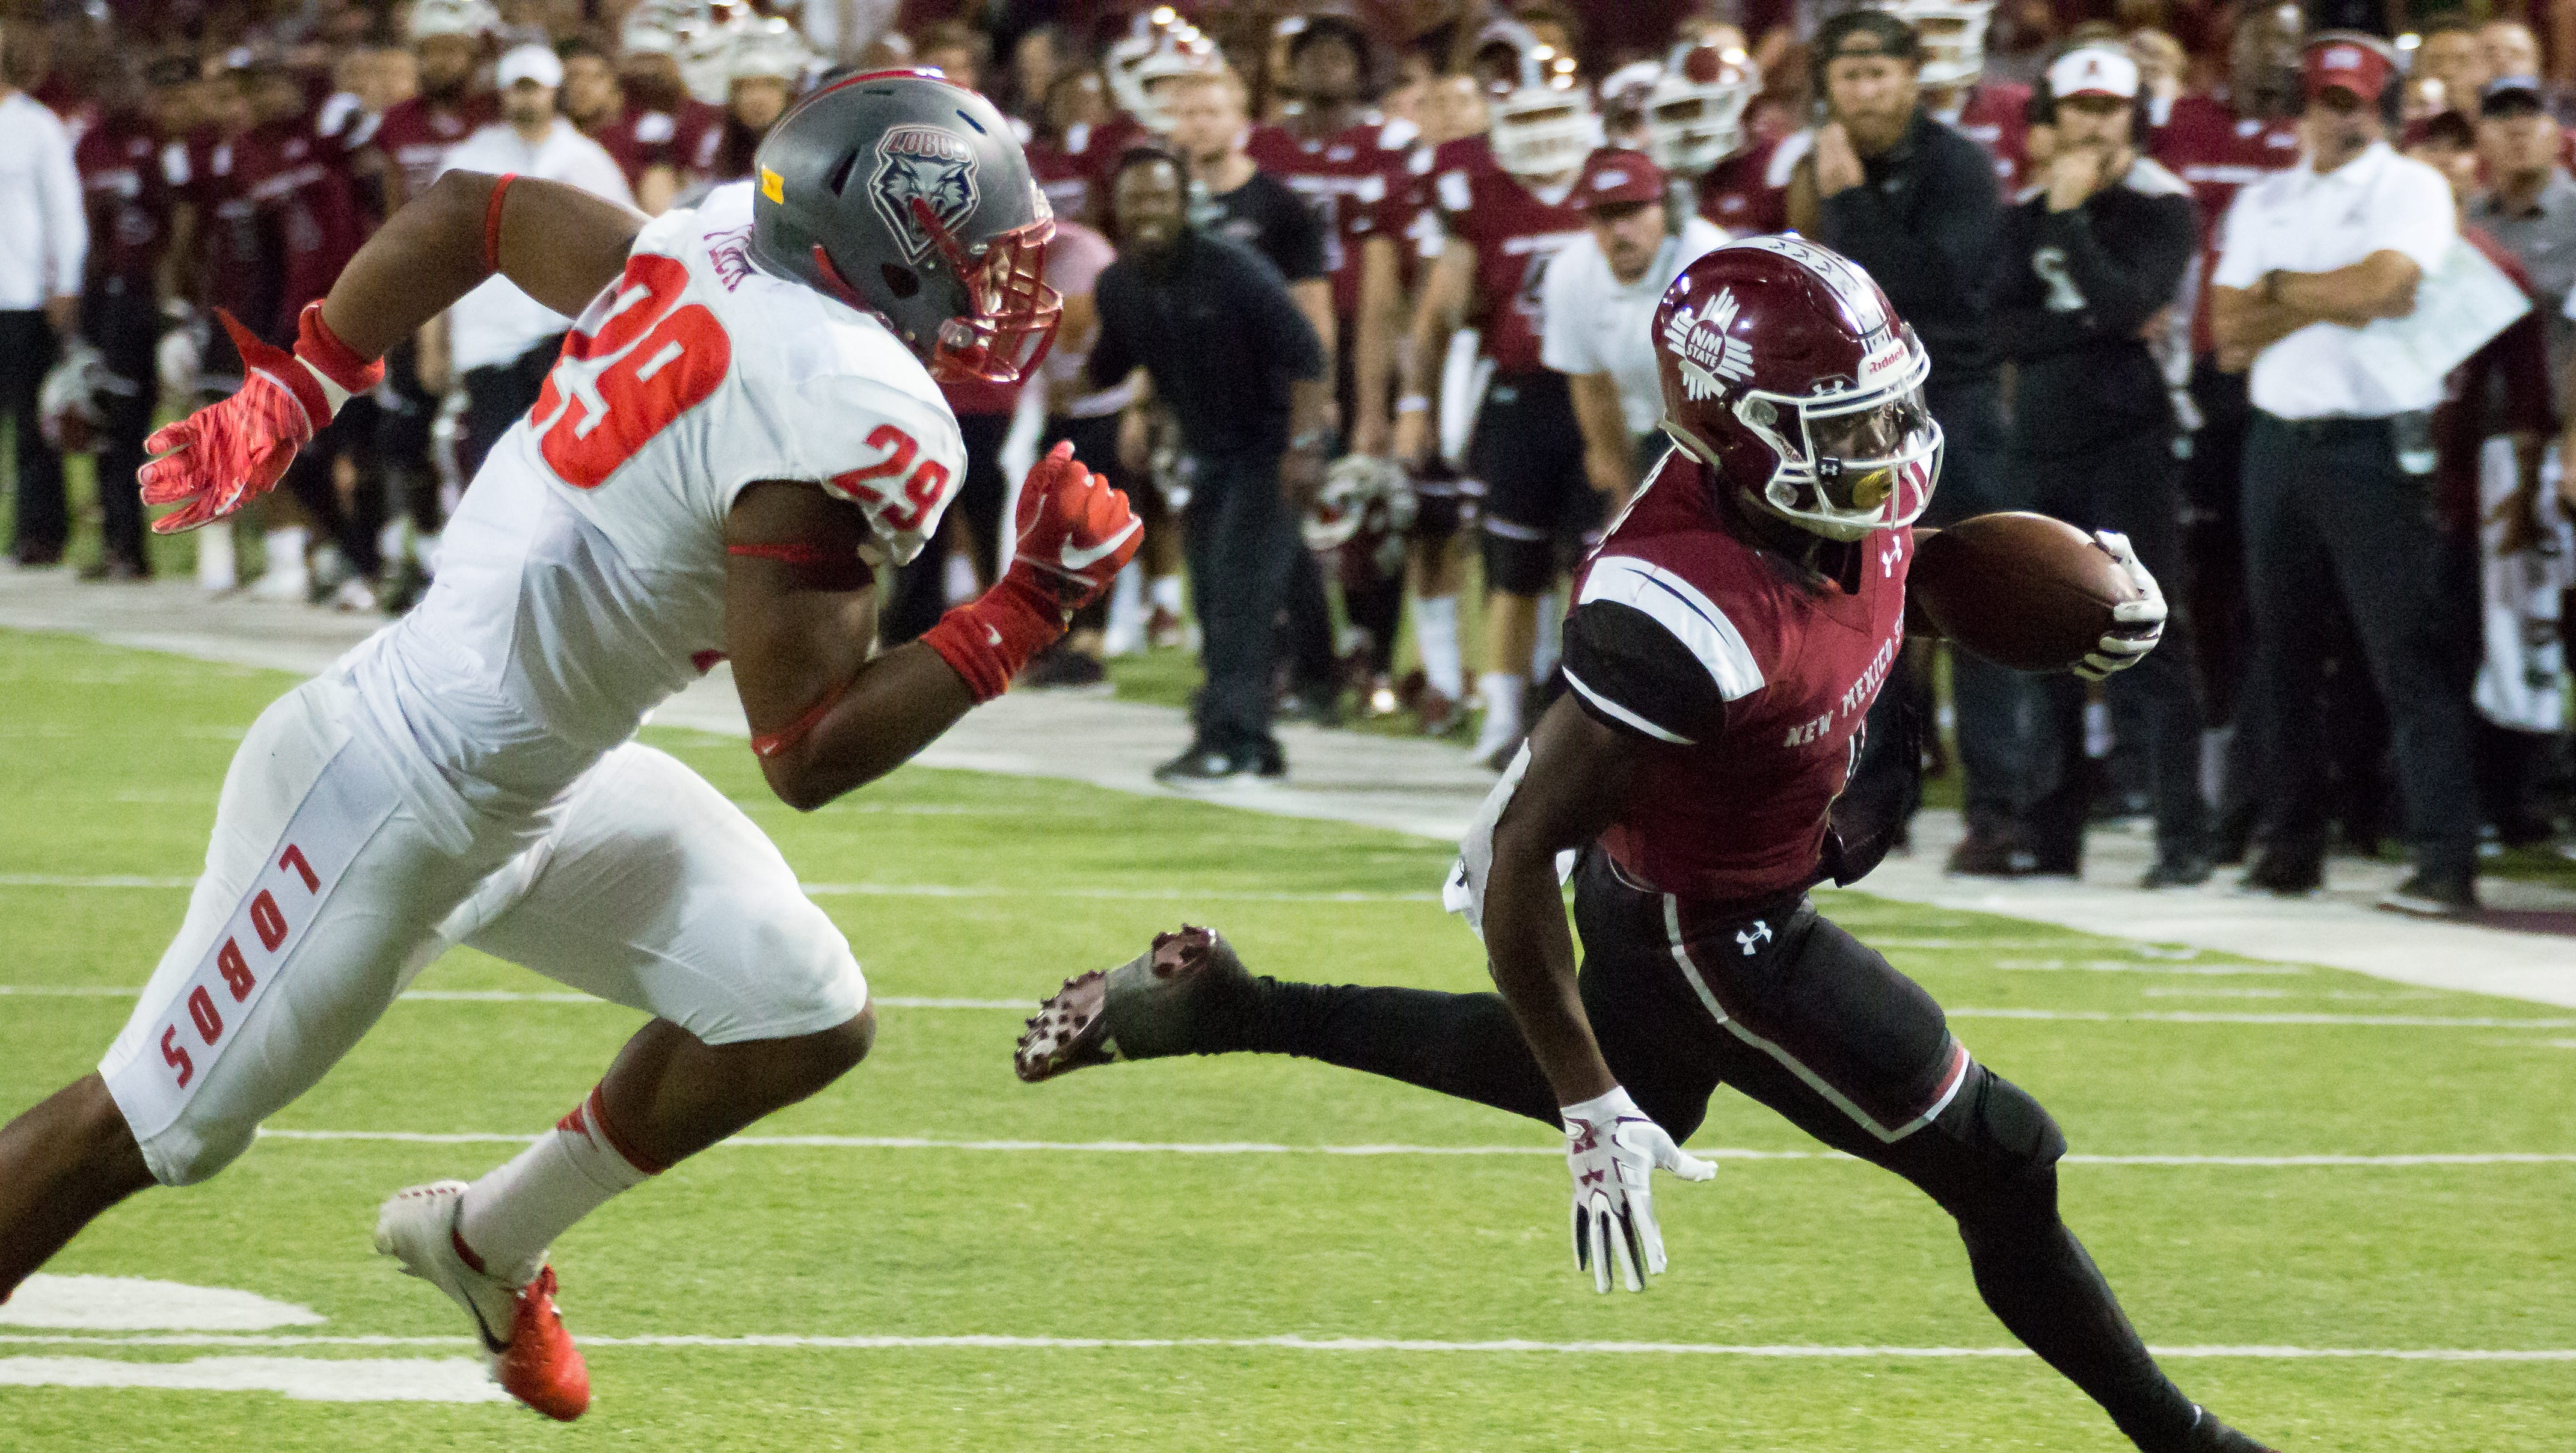 NMSU's Jason Huntley runs with the ball as UNM's Jalin Burrell looks to make the stop  on Saturday, September 15, 2018, at Aggie Memorial Stadium.